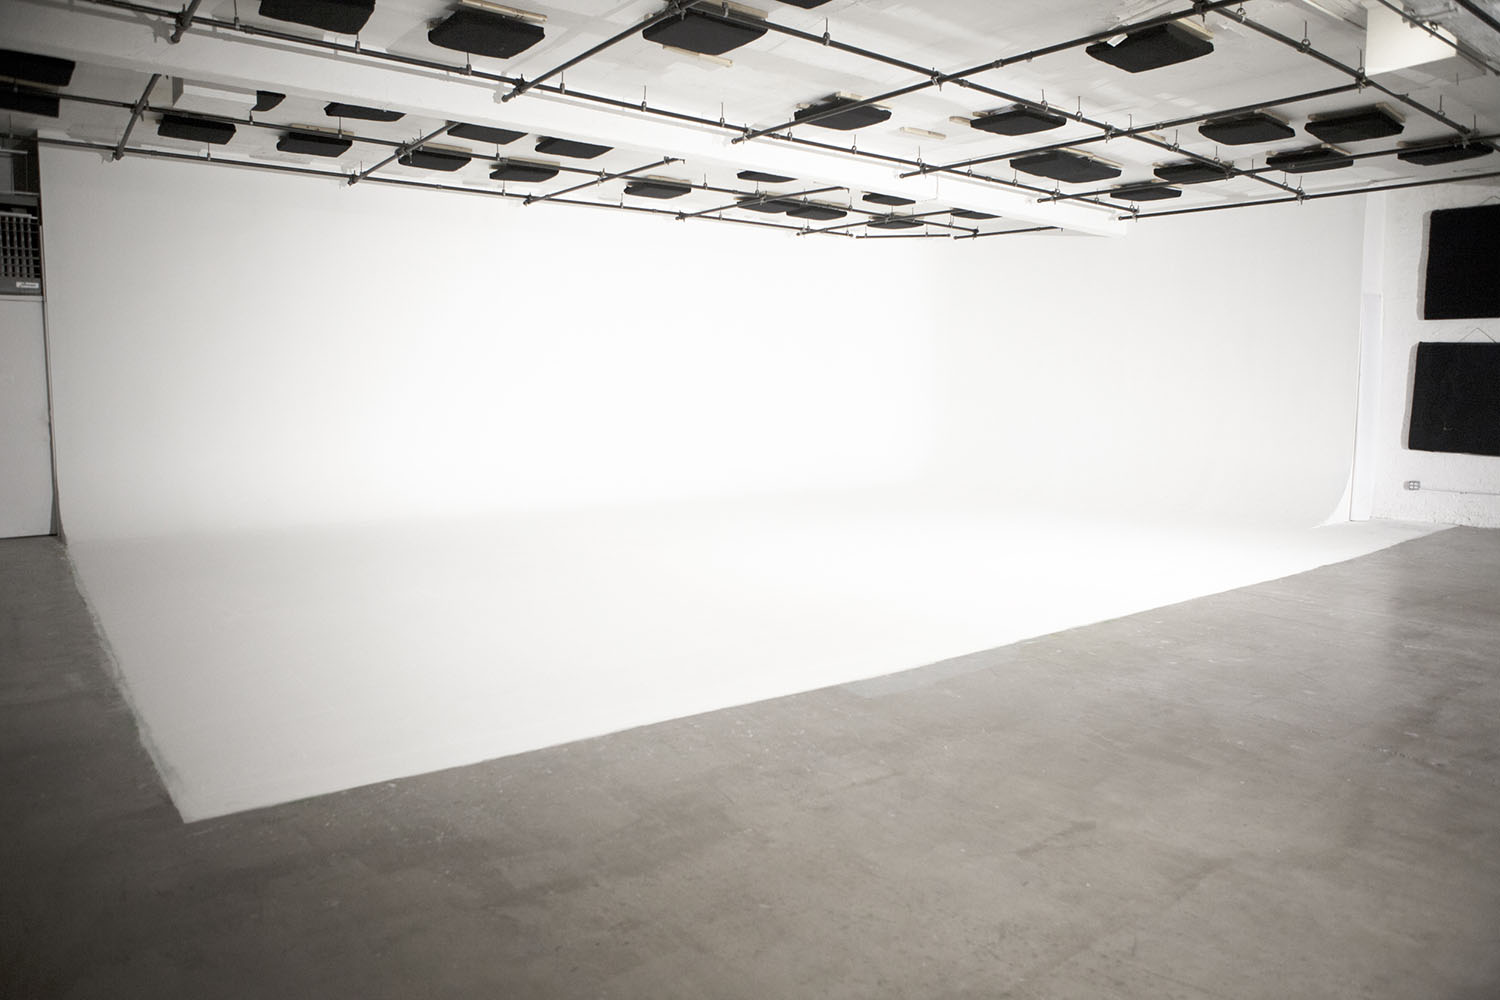 Photo, Video & Film Studio NYC | White Cyc Studio Rentals